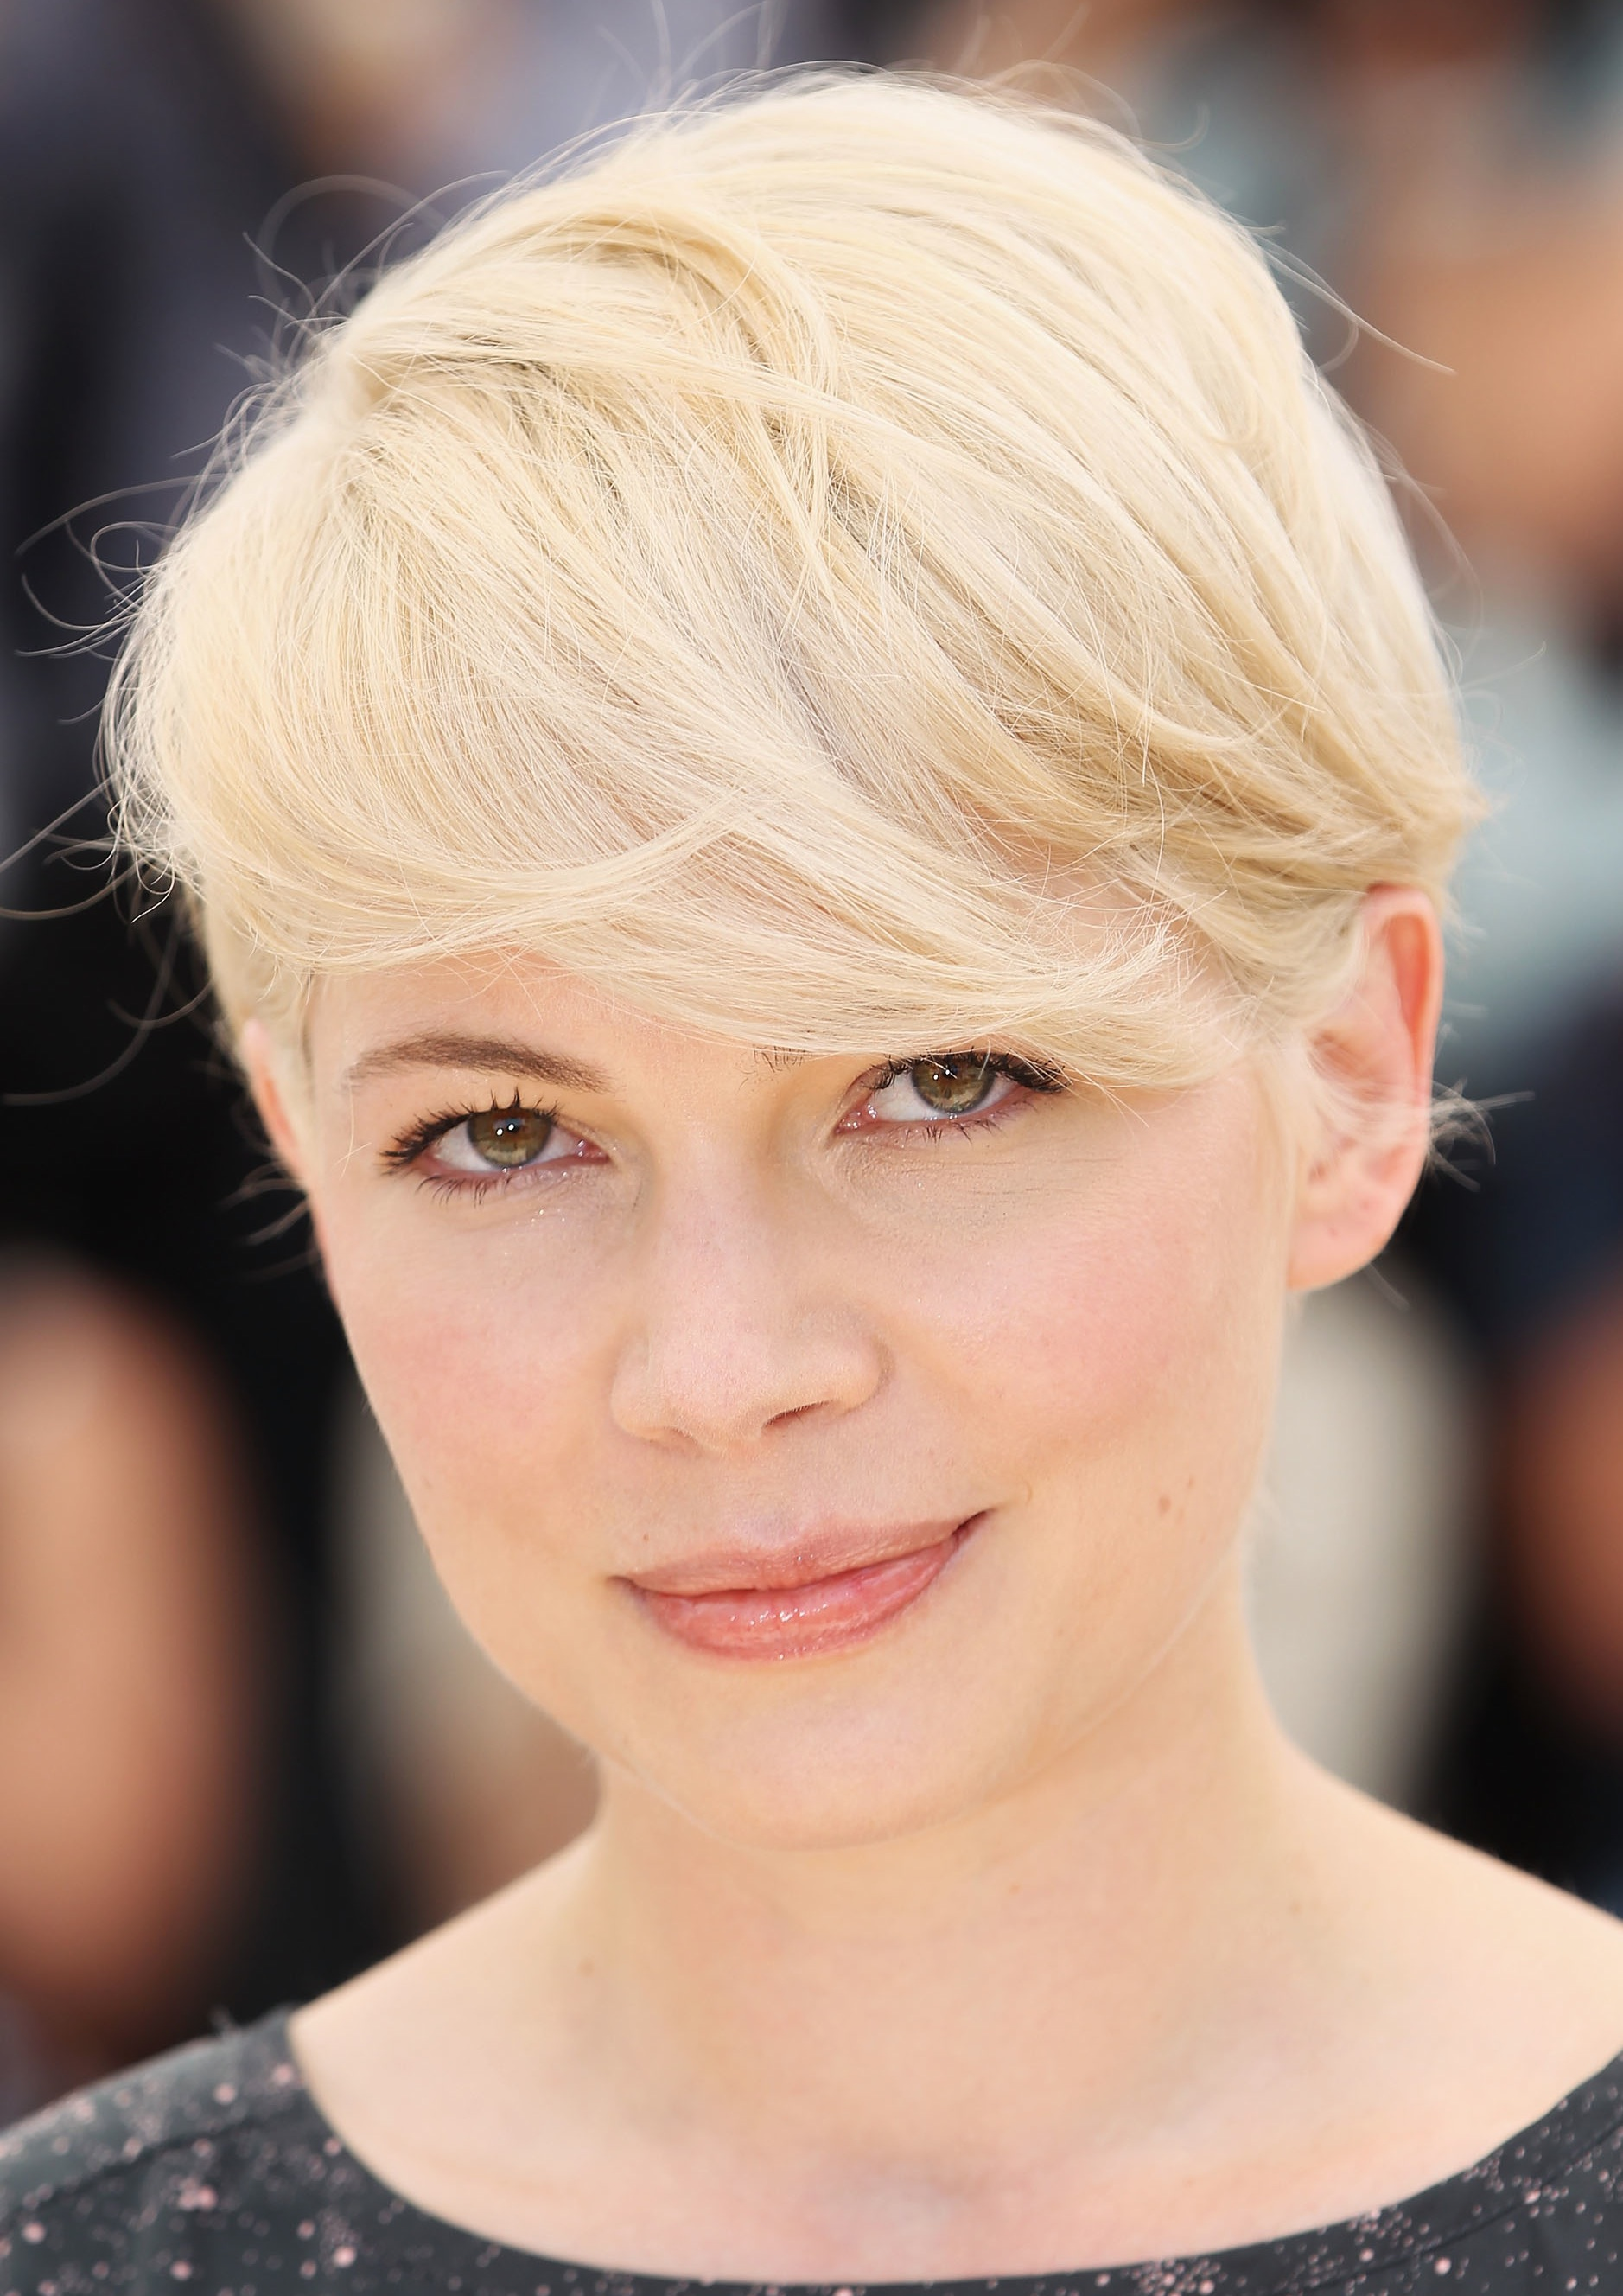 michelle_williams_short_hair_1.jpg